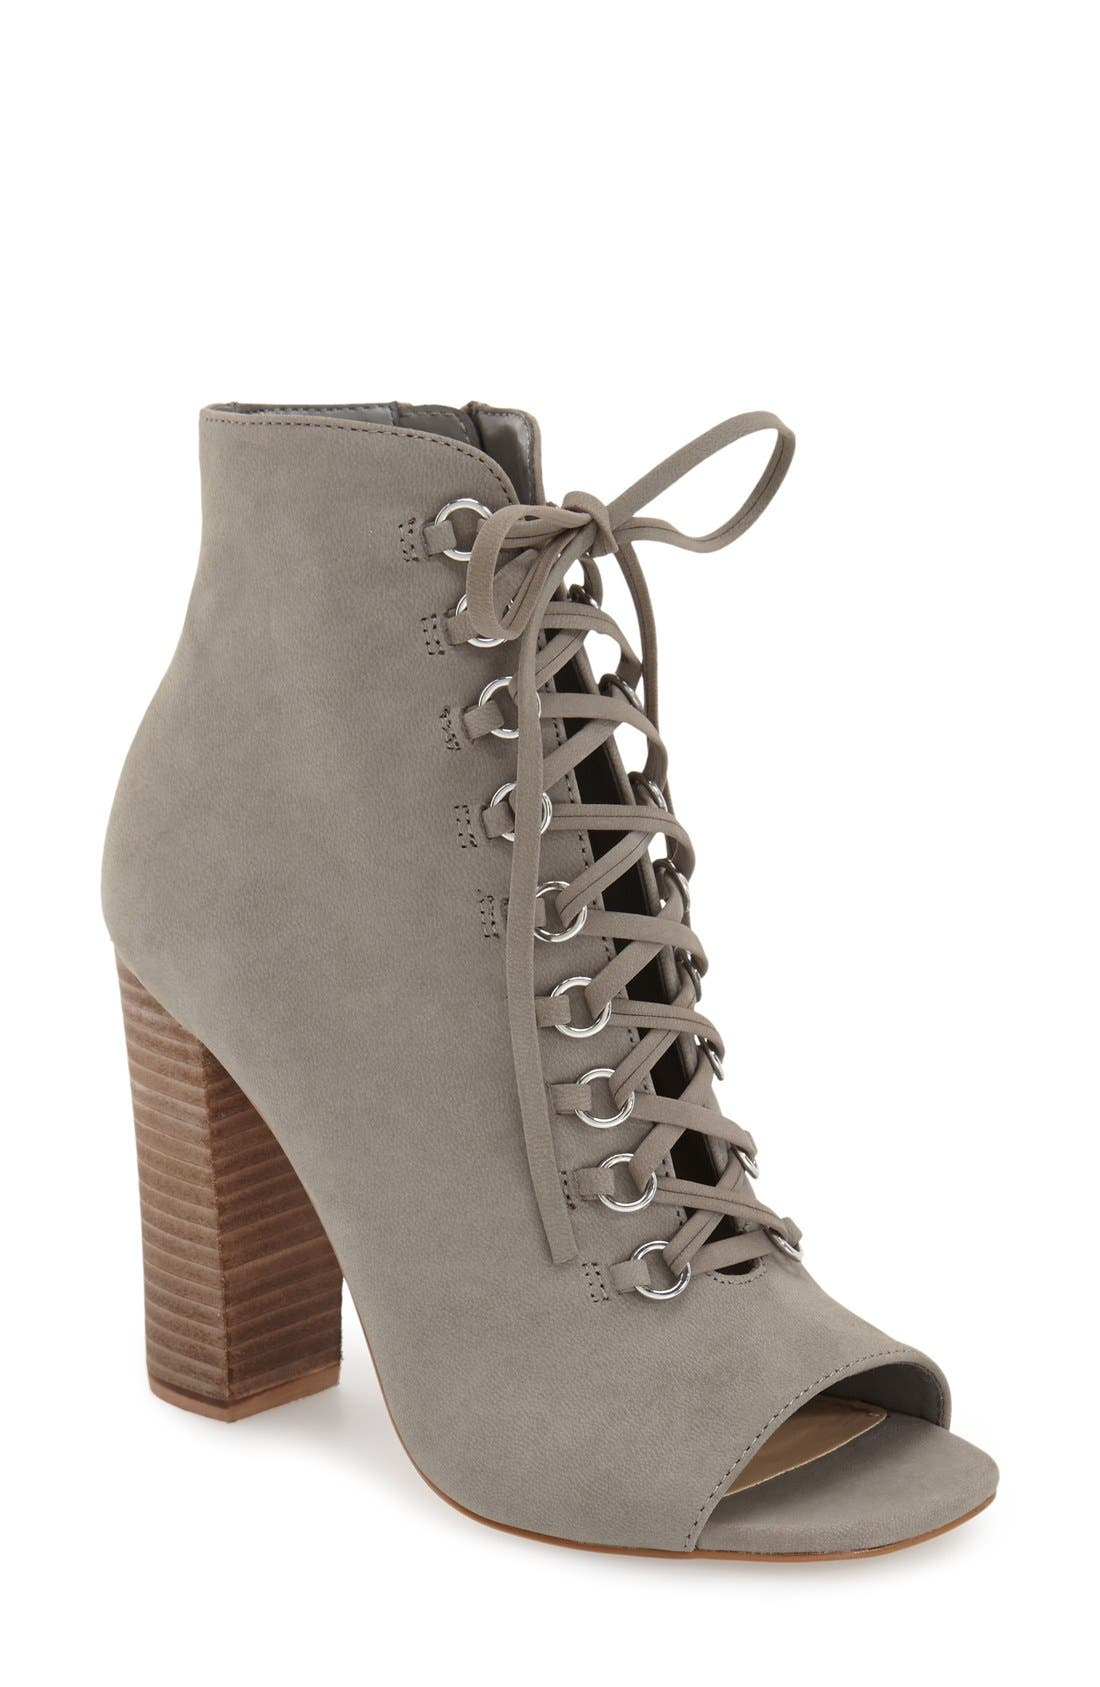 Alternate Image 1 Selected - Steve Madden 'Freemee' Open Top Lace-Up Bootie (Women)